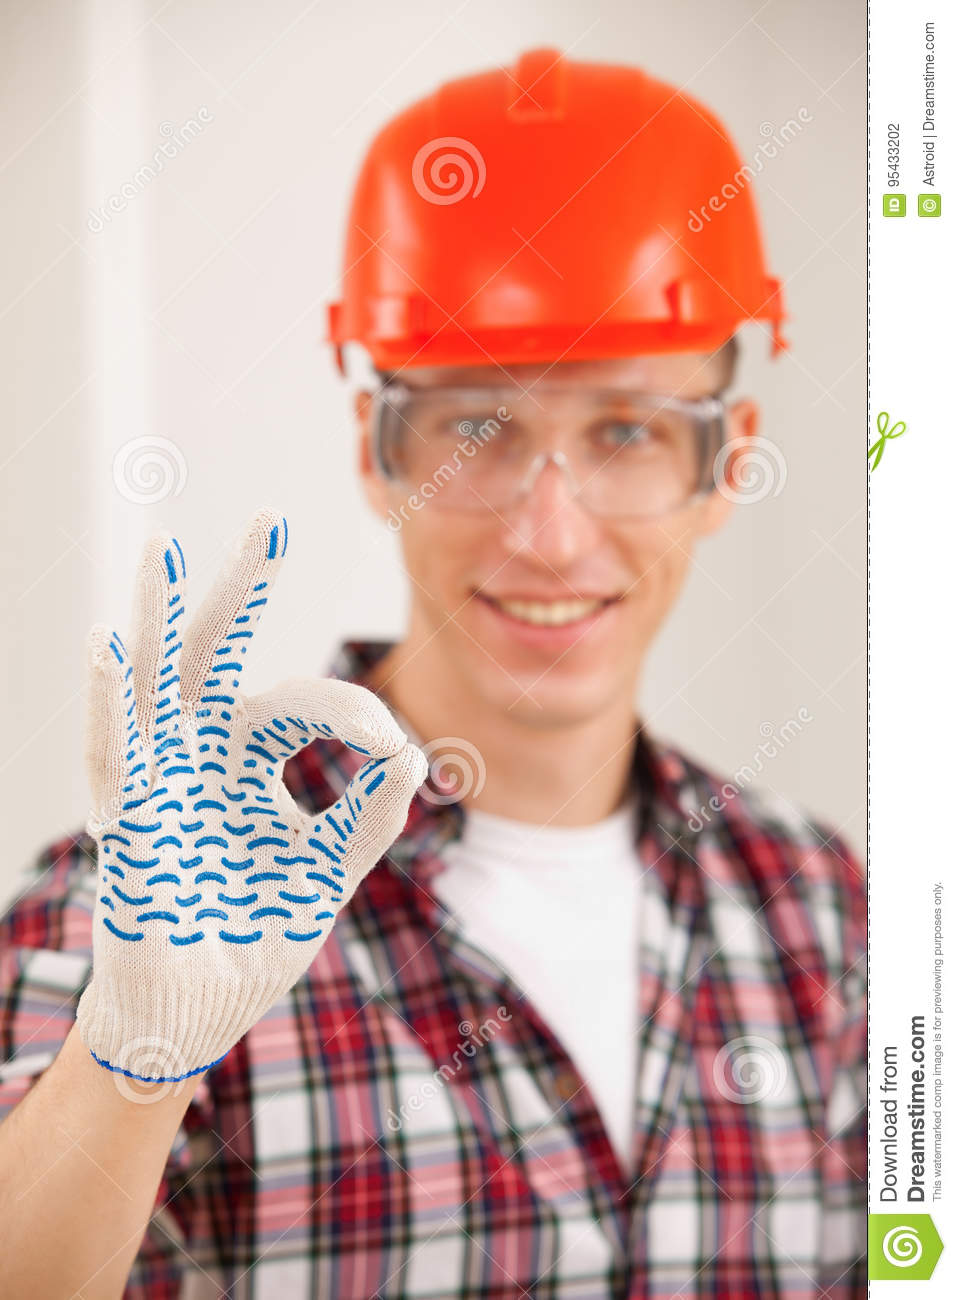 Repairman making a perfect gesture with his gloved hand